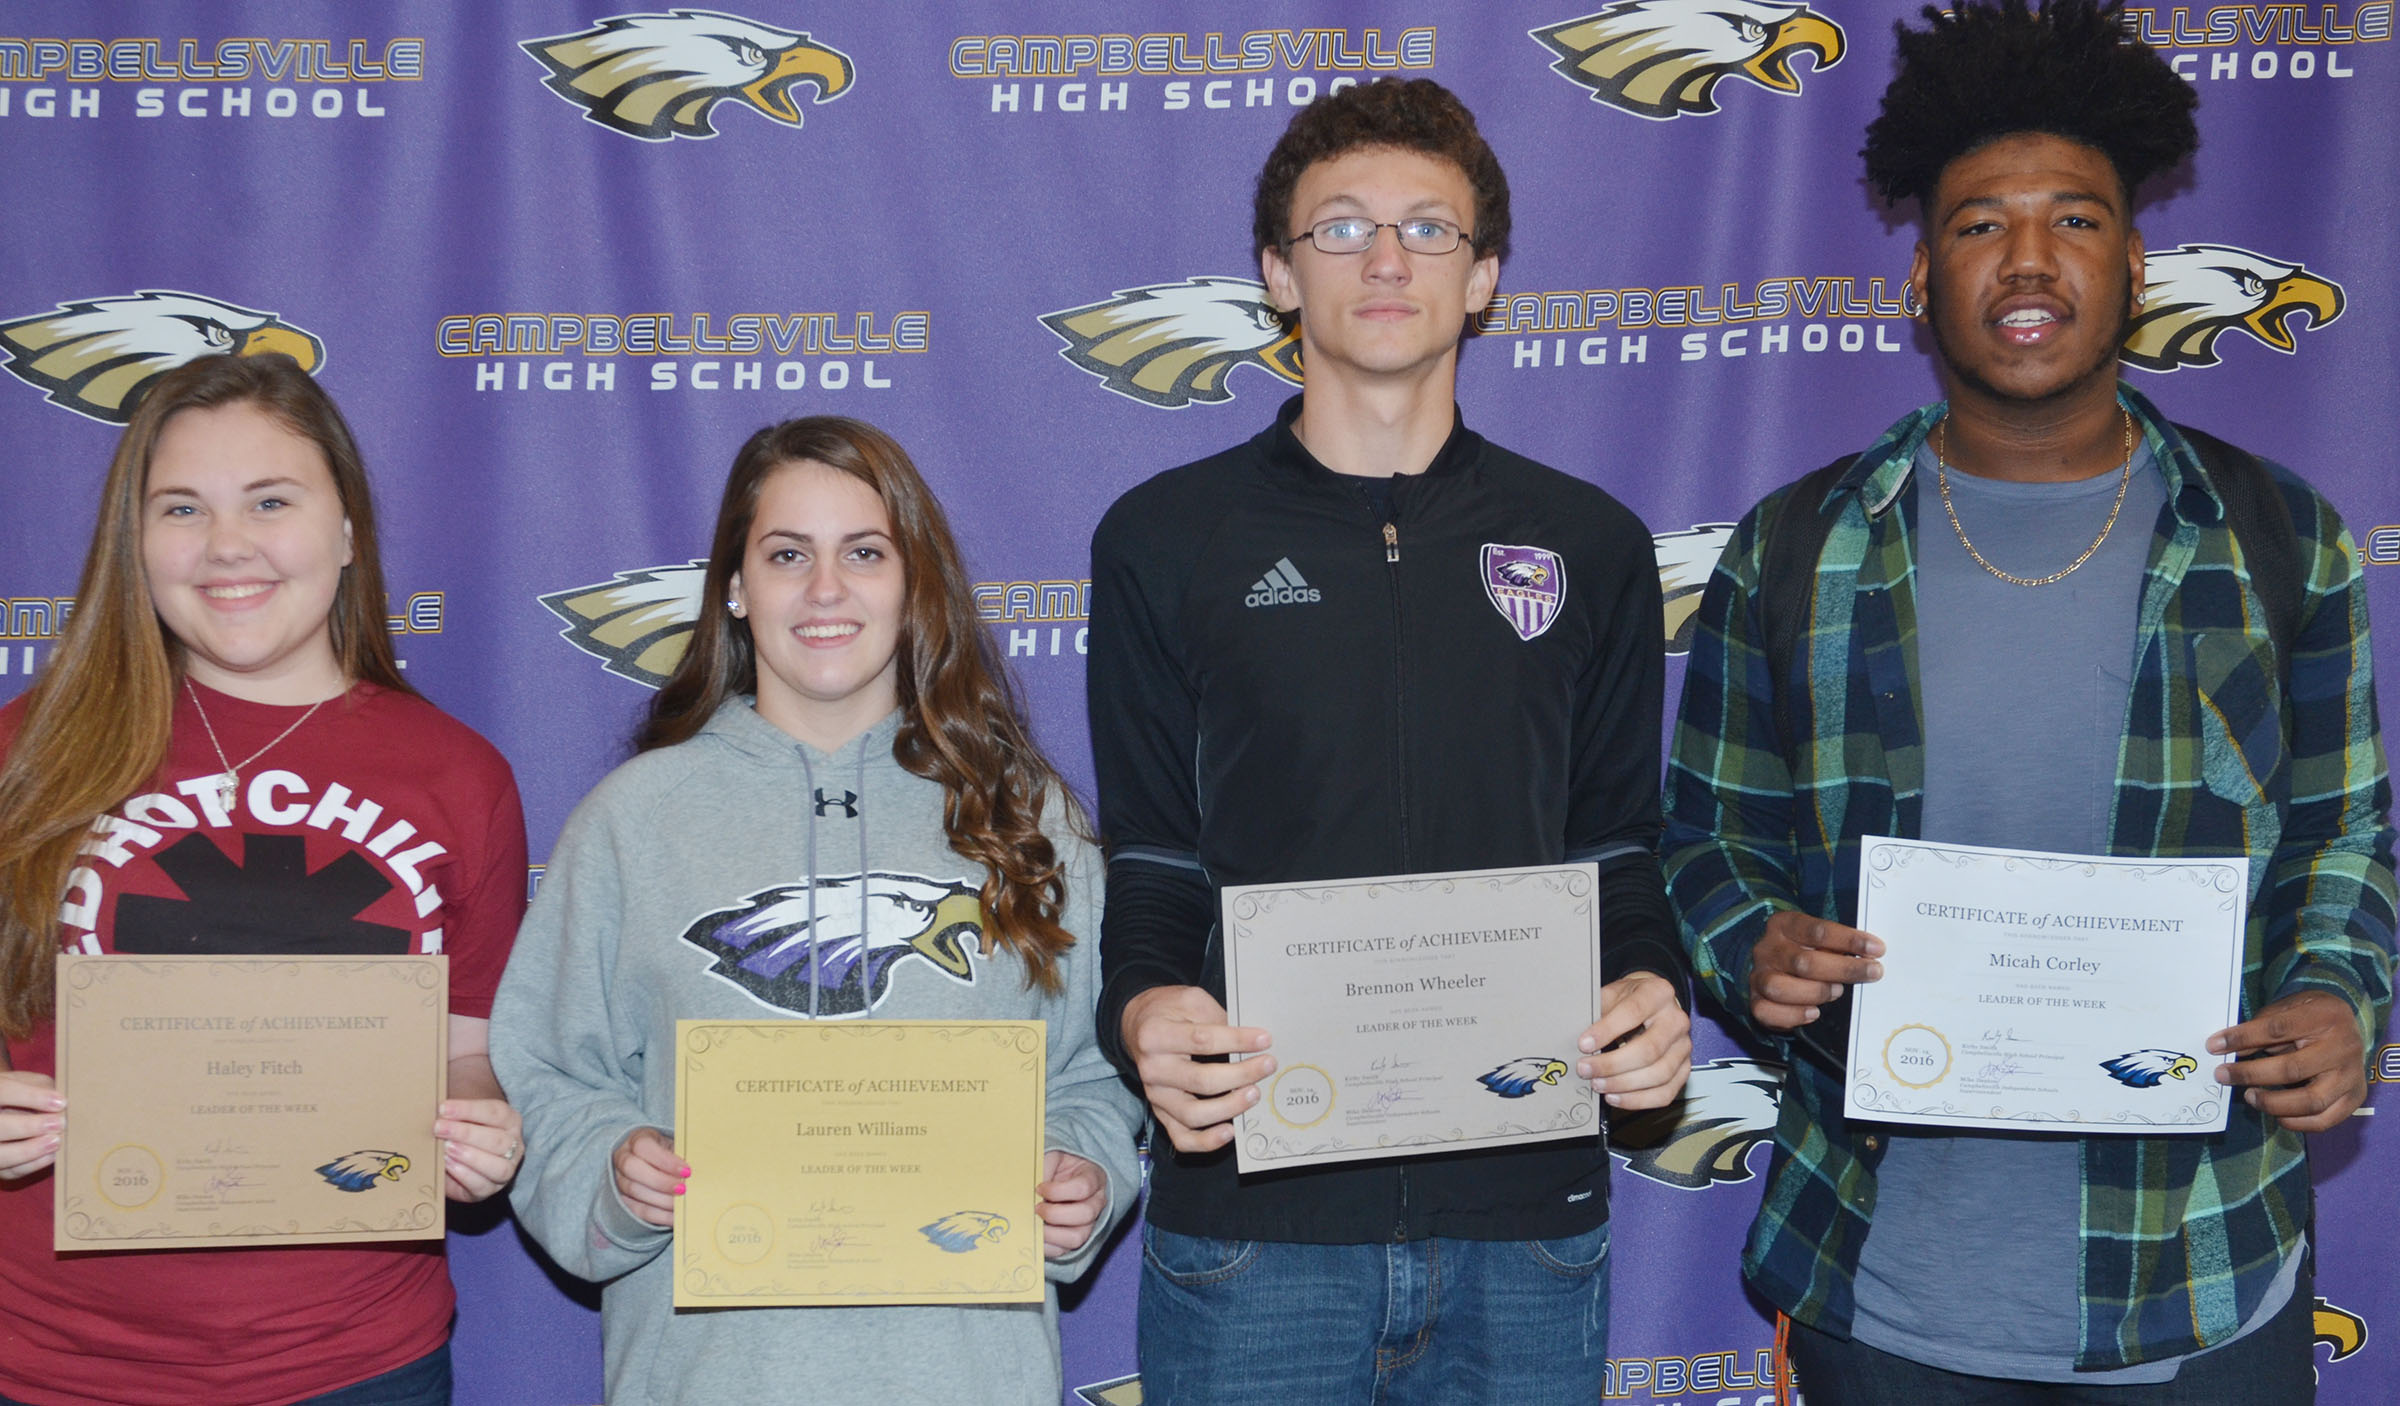 From left are junior Haley Fitch, sophomore Lauren Williams, freshman Brennon Wheeler and senior Micah Corley.